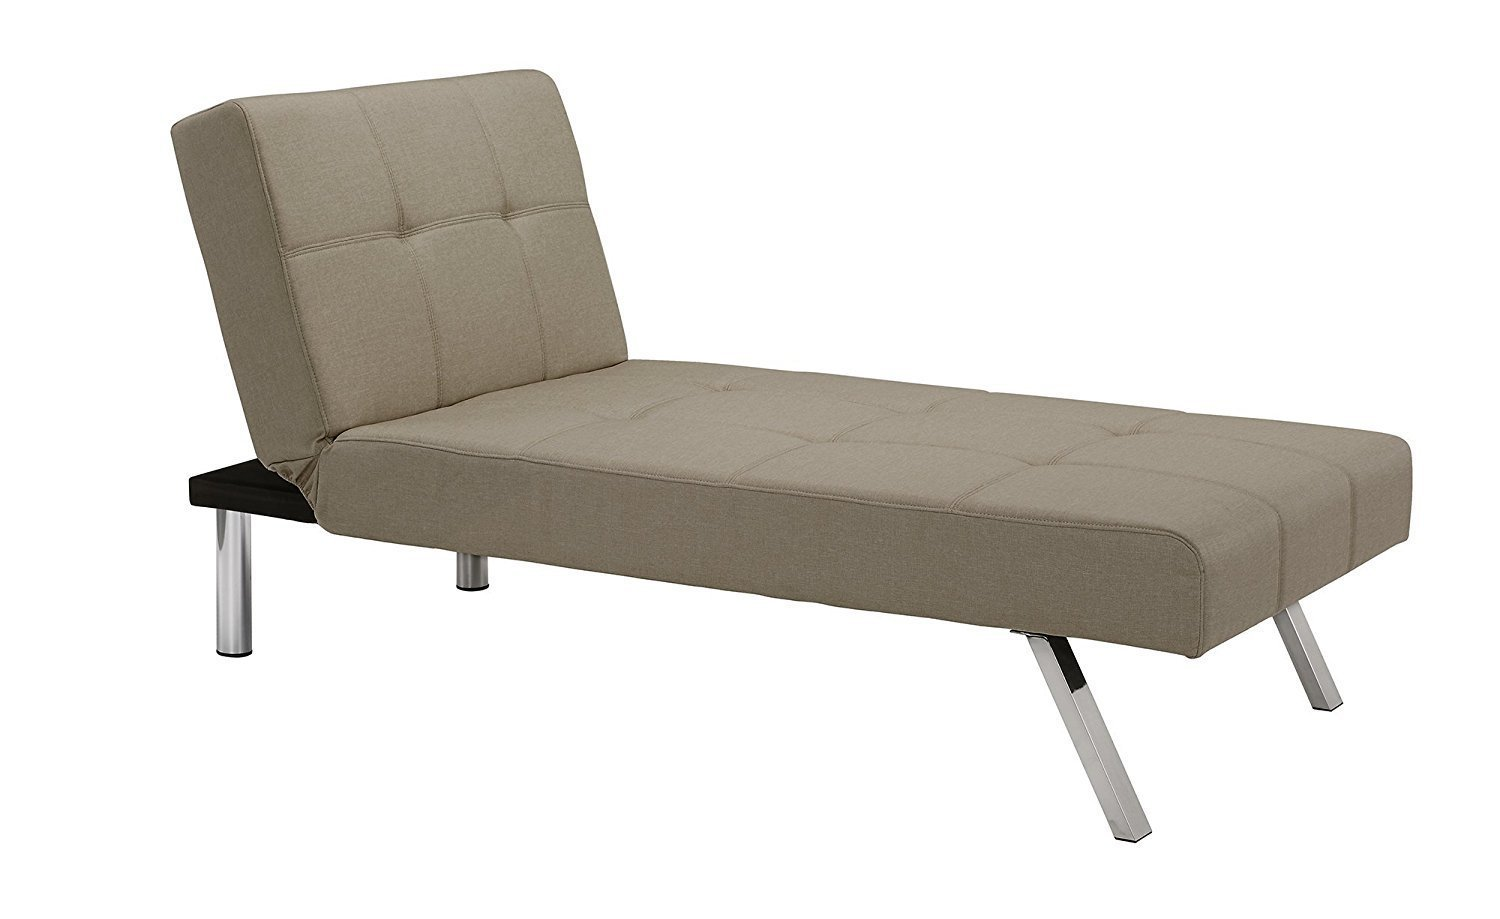 Sectional Sofa With Chaise Lounge Home Furniture Design